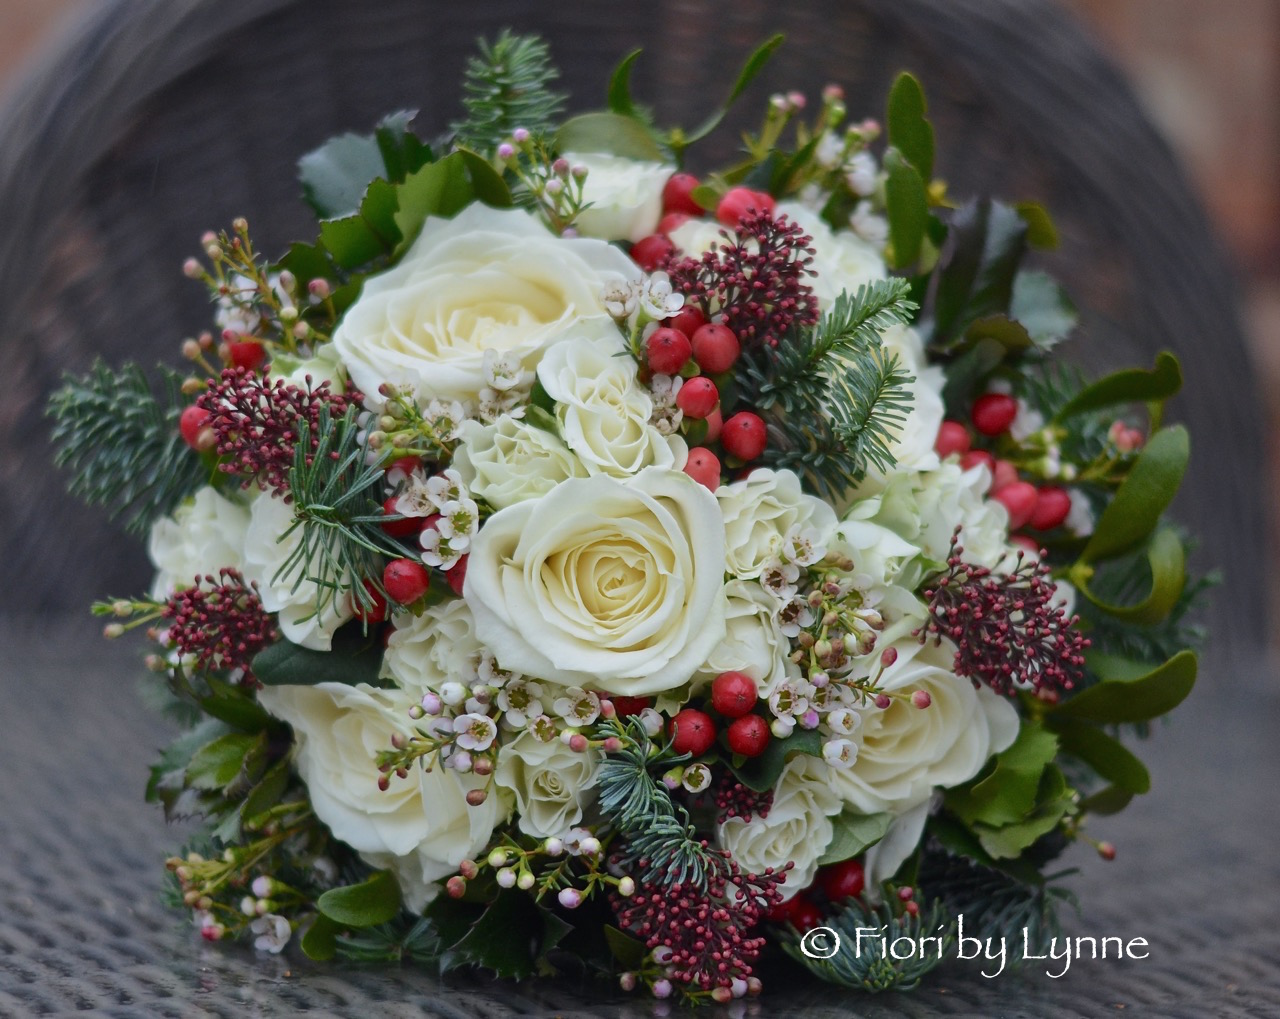 winter-bouquet-white-rose-red-berry-seasonal-foliages.jpg